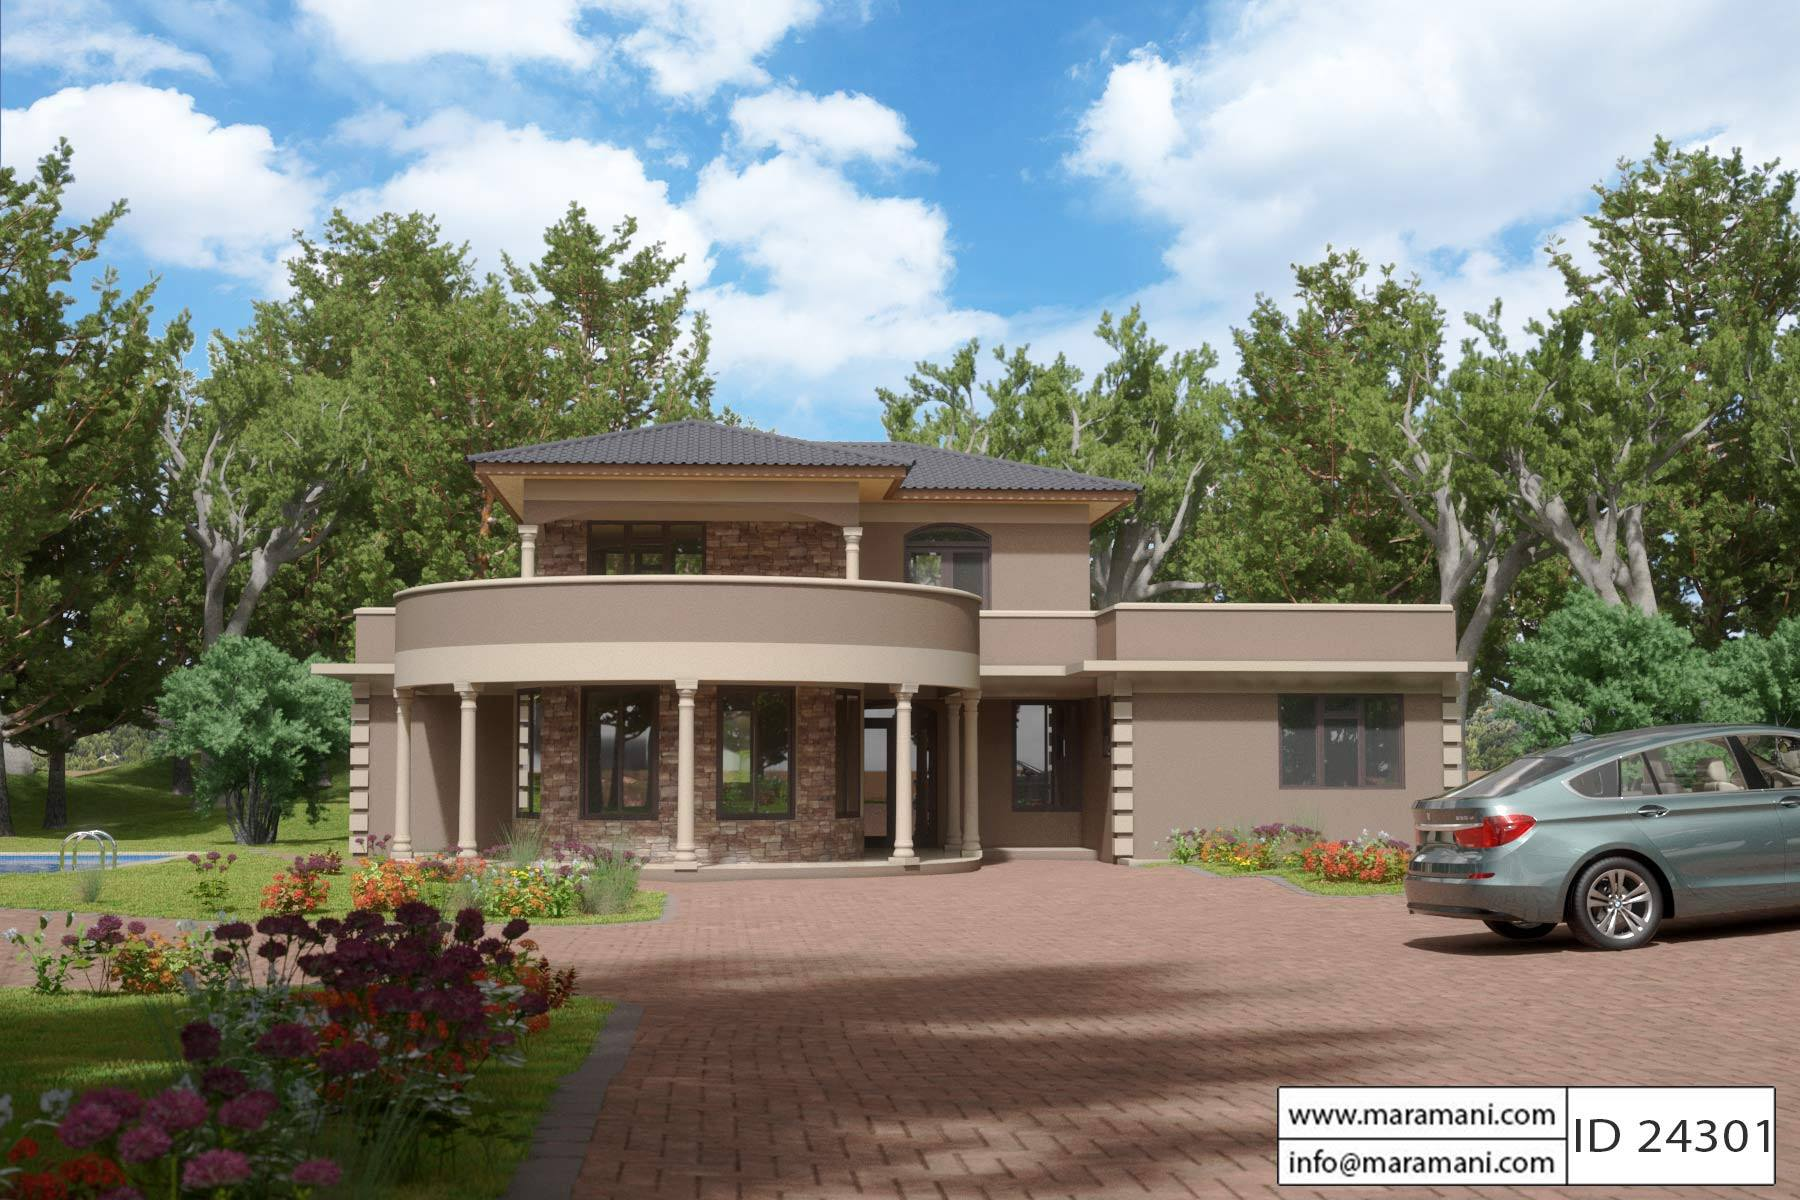 Contemporary 4 Bedroom House Plan - ID 24301 - Building ...